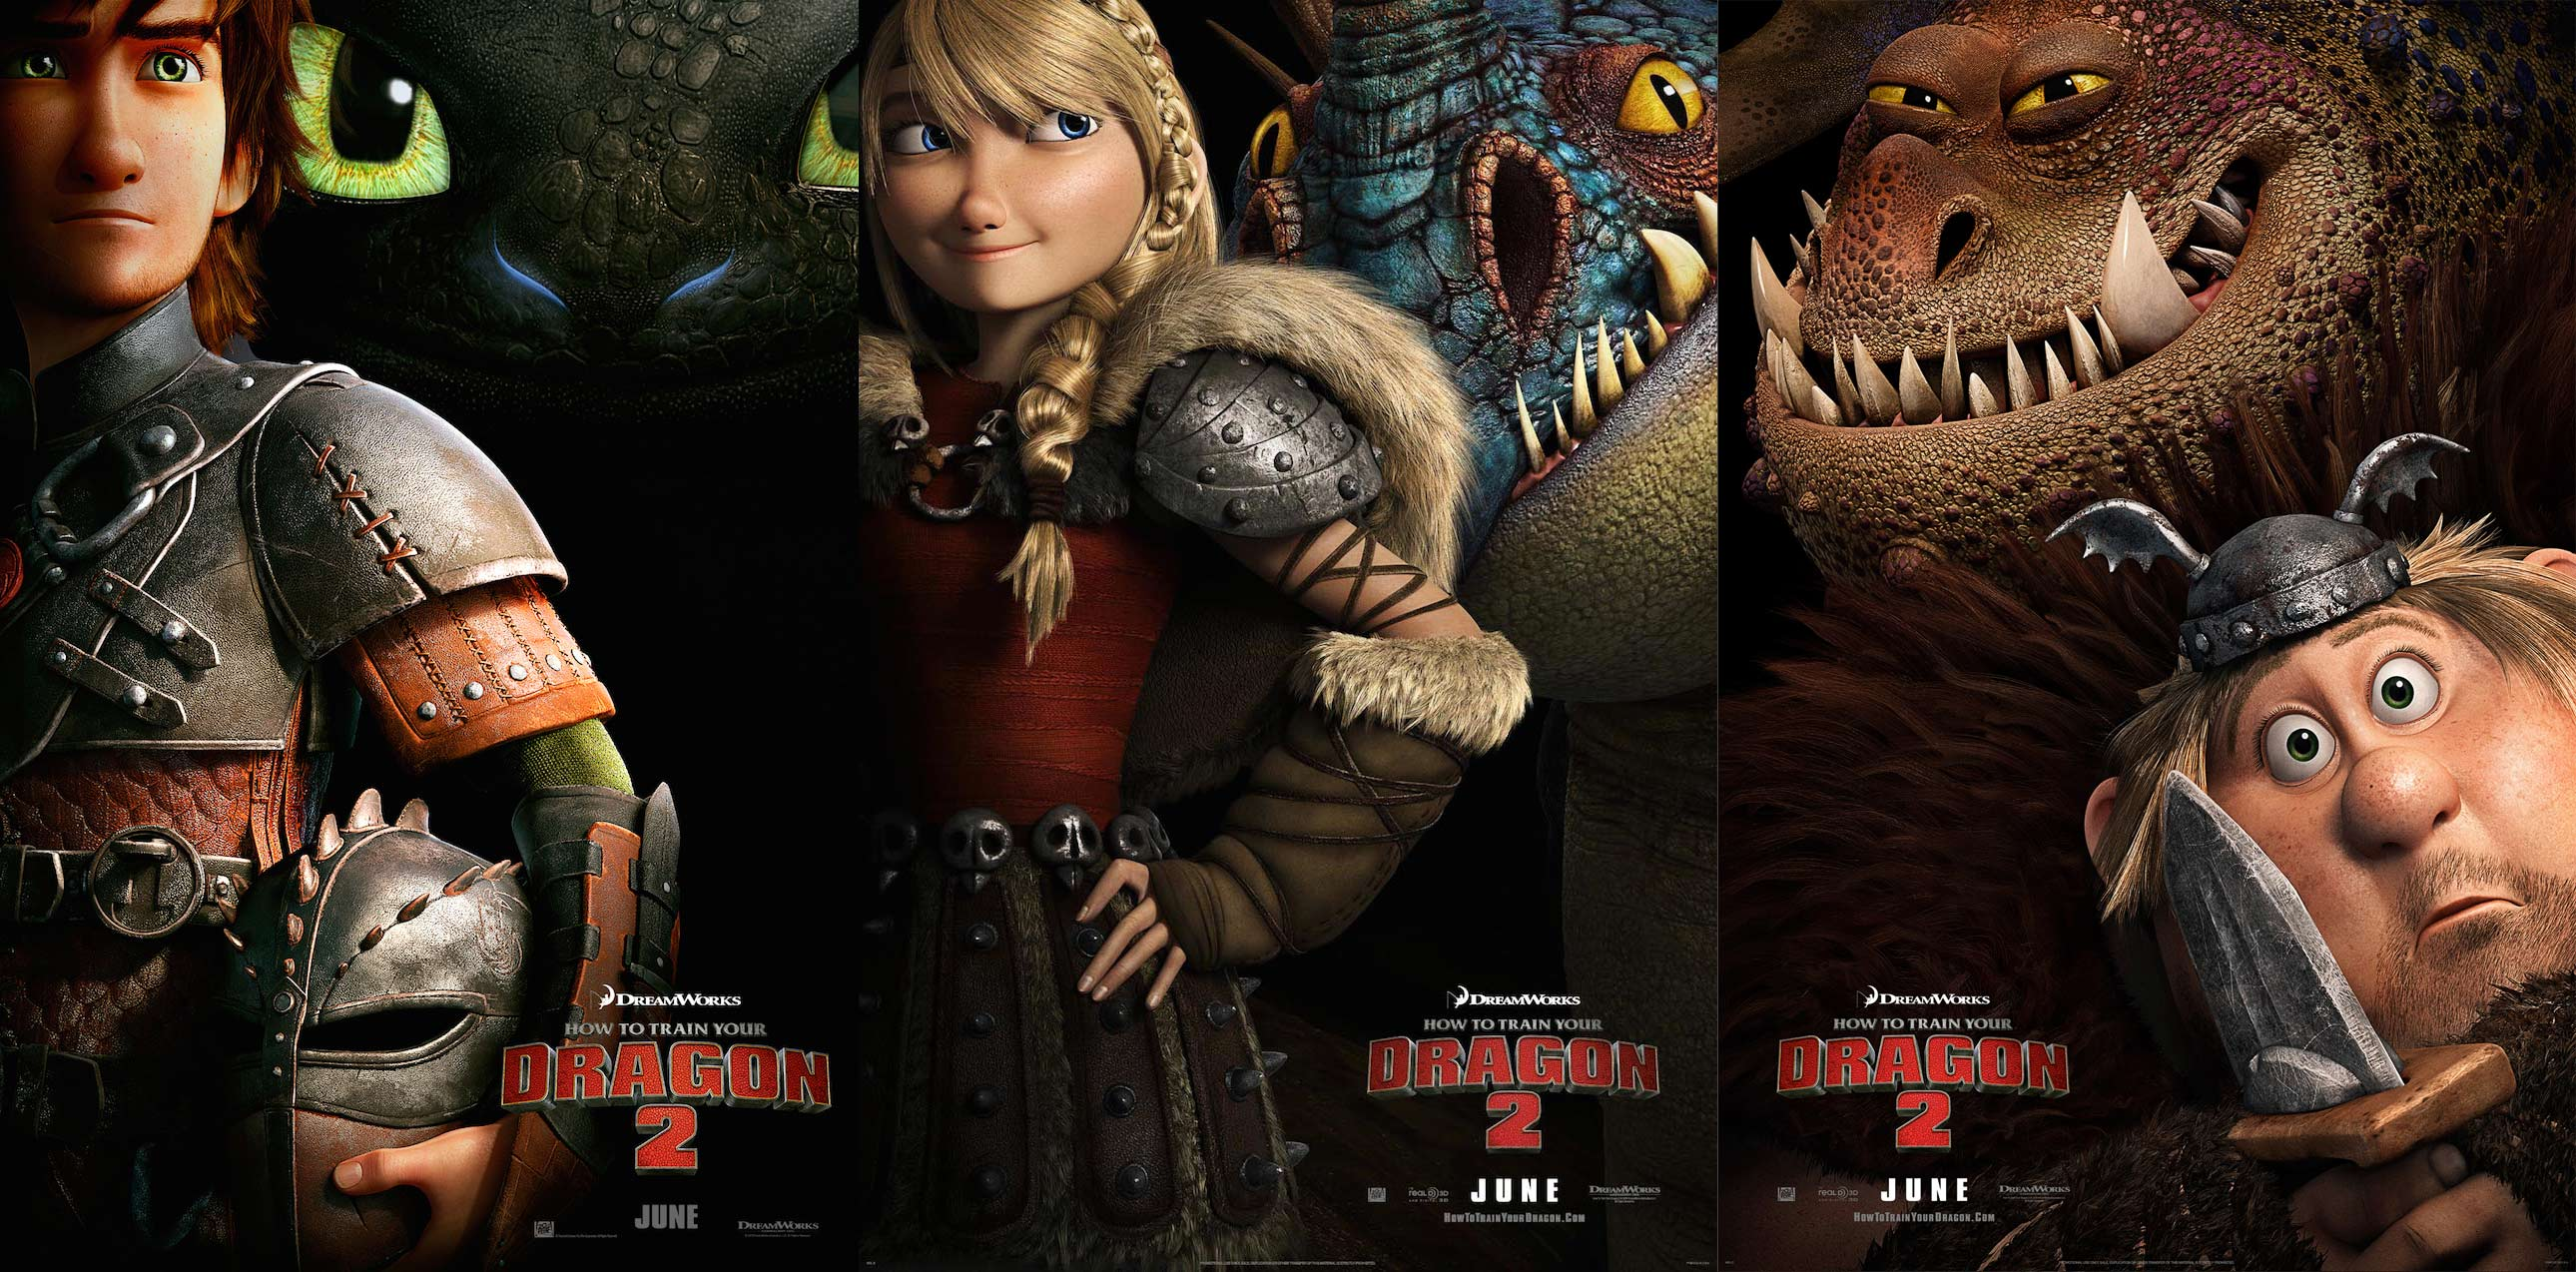 Hiccup Toothless Astrid Stormfly Fishlegs And Meatlug From How To Train Your Dragon 2 Wallpaper